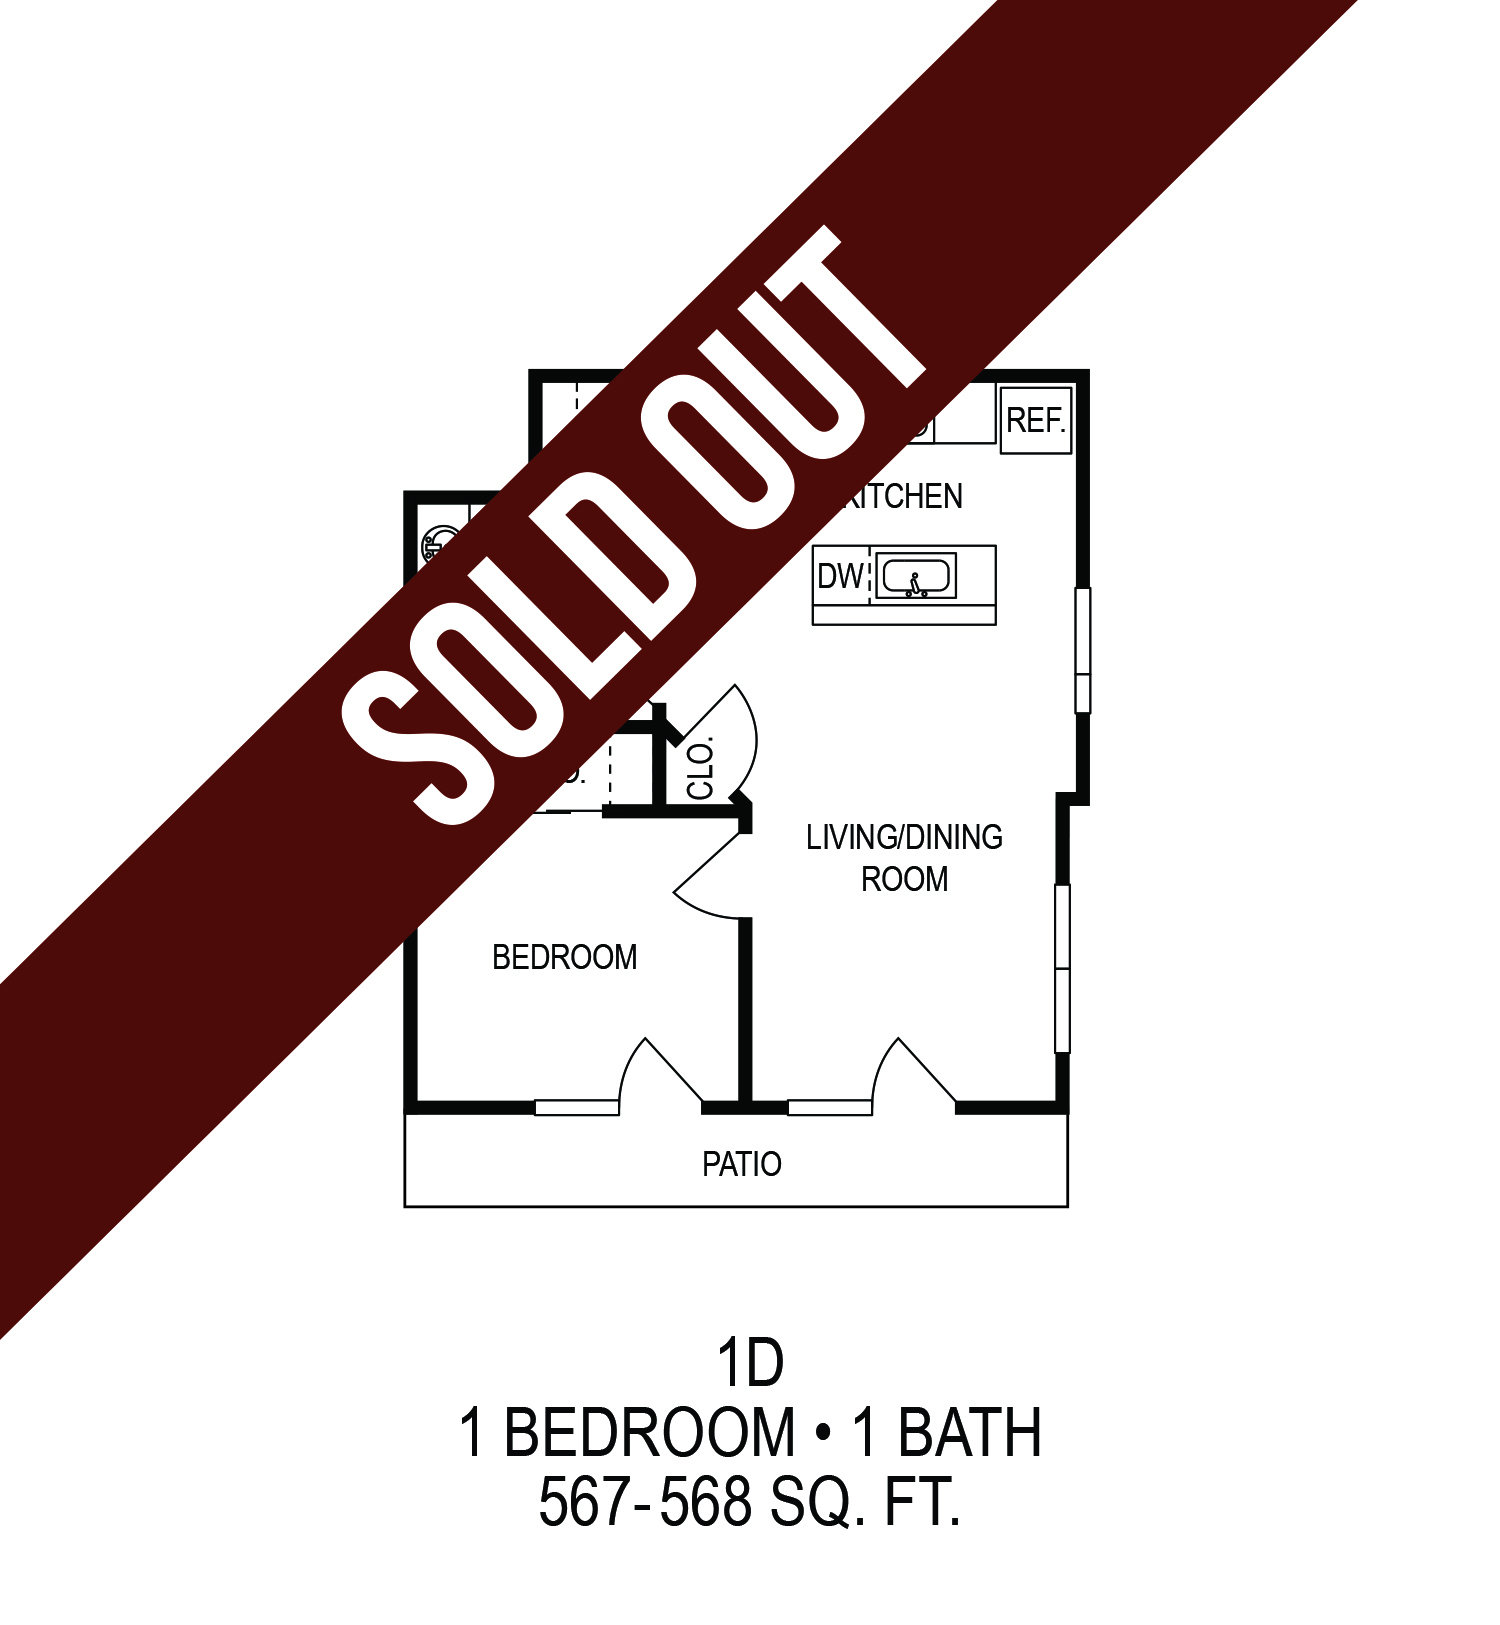 Floorplan - One Bedroom with Sundeck (D) image